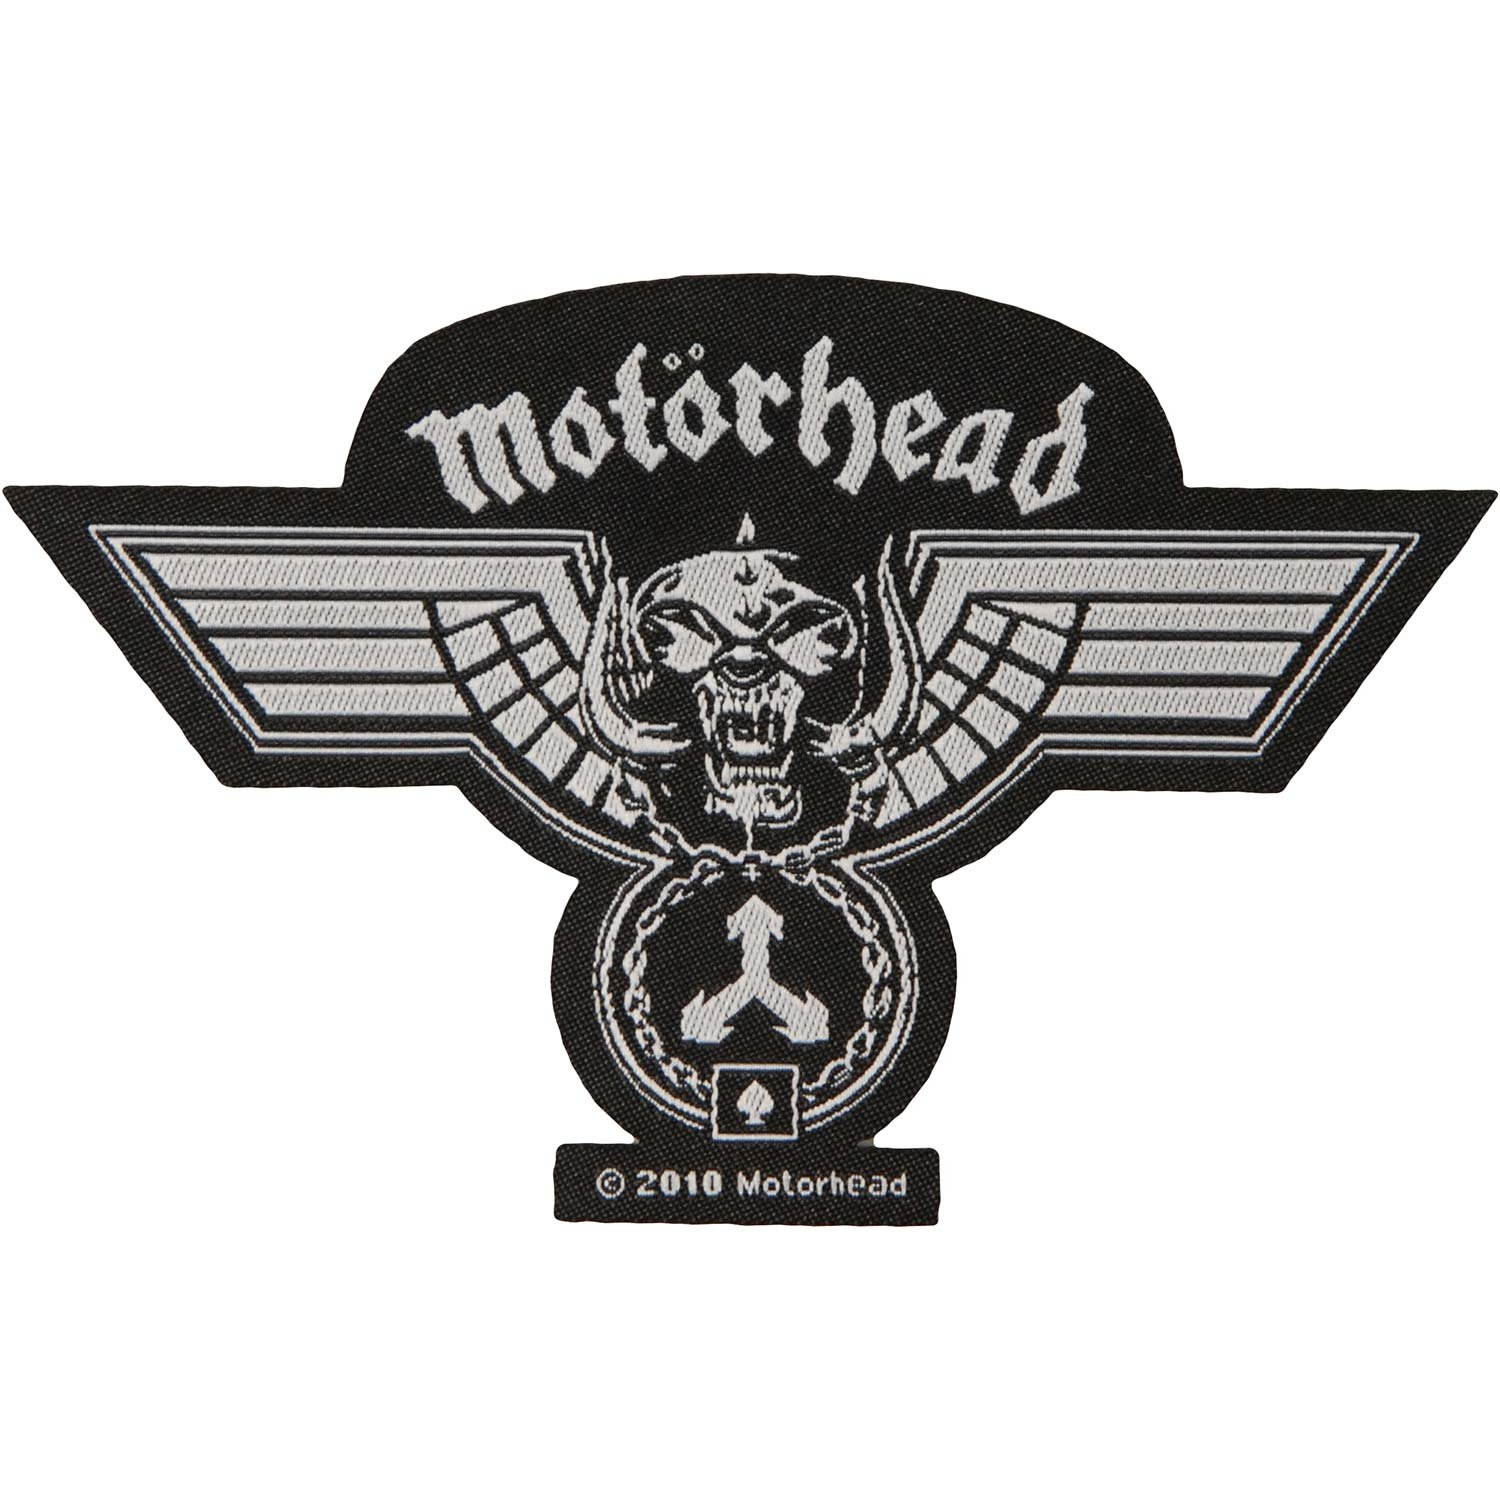 Motorhead Hammered Cut Out Patch War Pig Medal Heavy Metal Woven Sew On Applique RAZAMATAZ